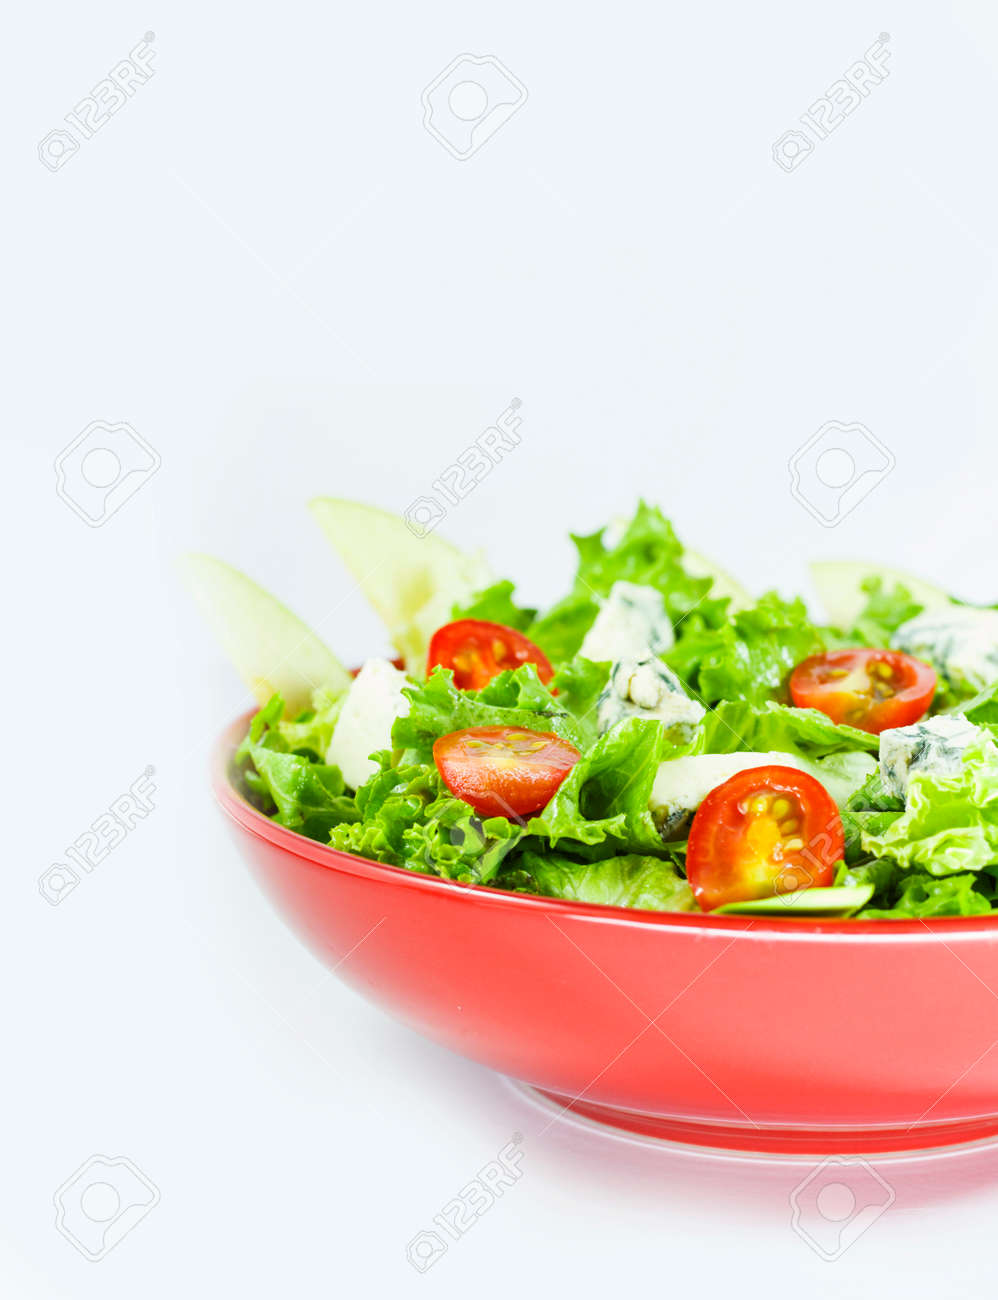 Vegetarian salad with tomatoes, cheese, lettuce. Vegetables in the red bowl. Delishes food. - 149602149